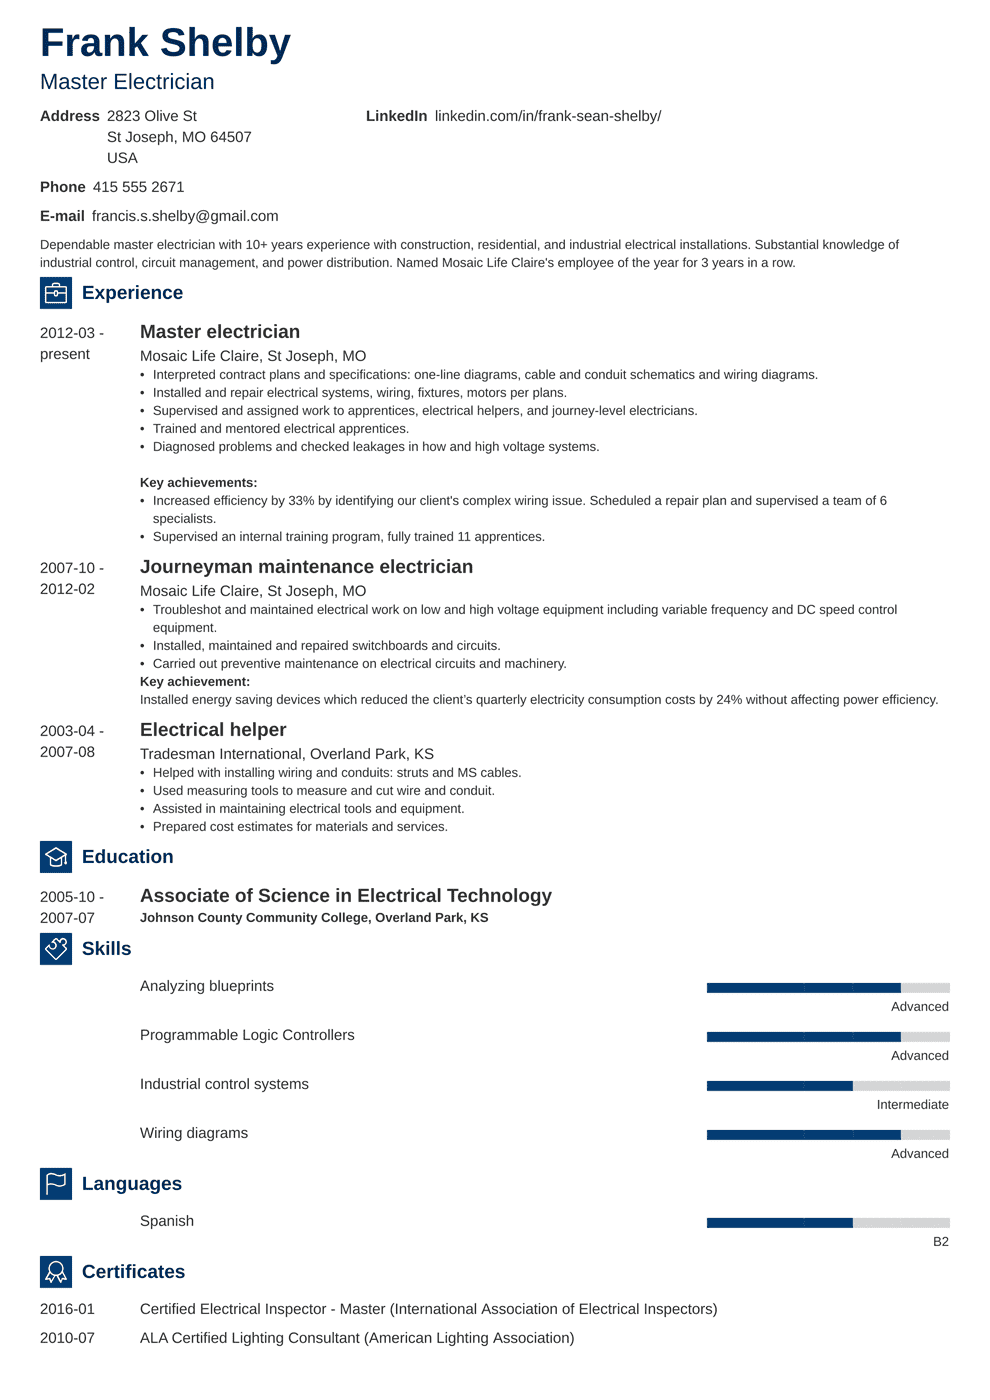 Electrician Resume: Sample & Complete Guide [20+ Examples]